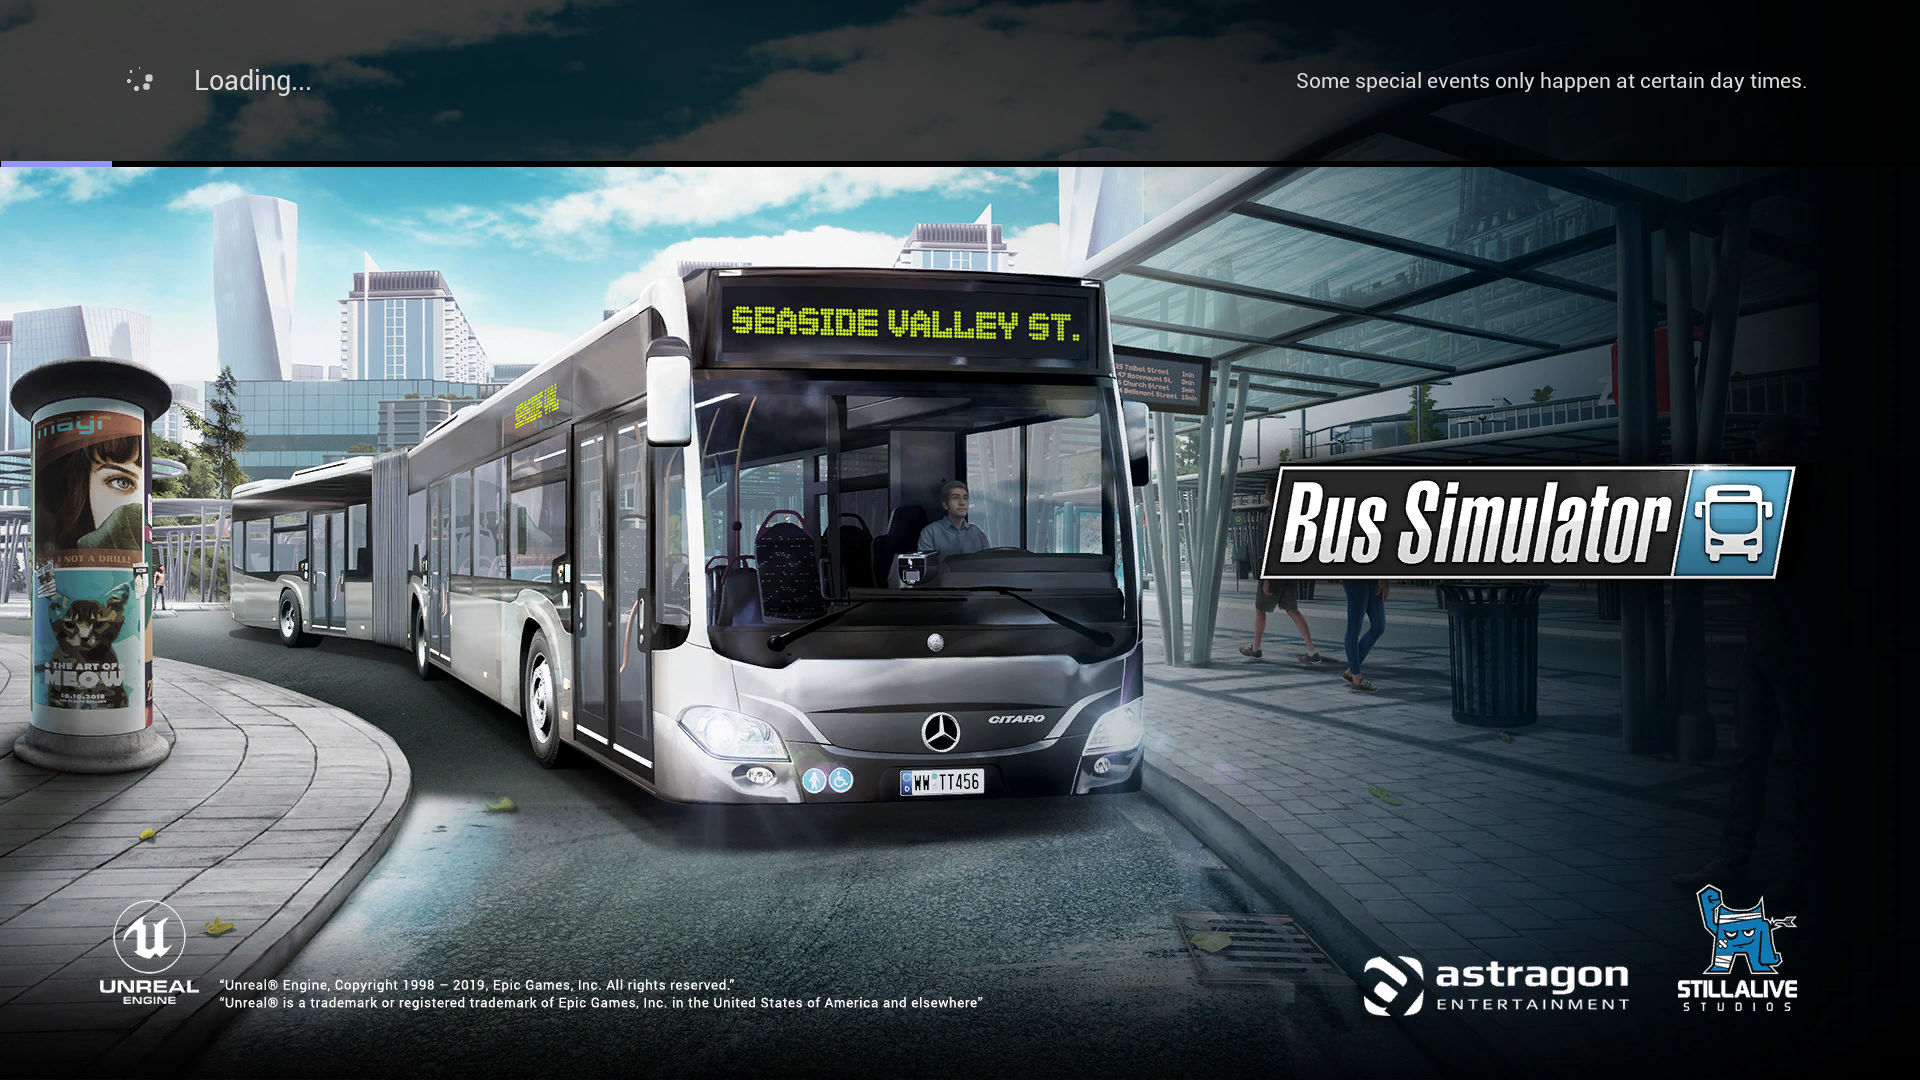 Bus Simulator Loading Page